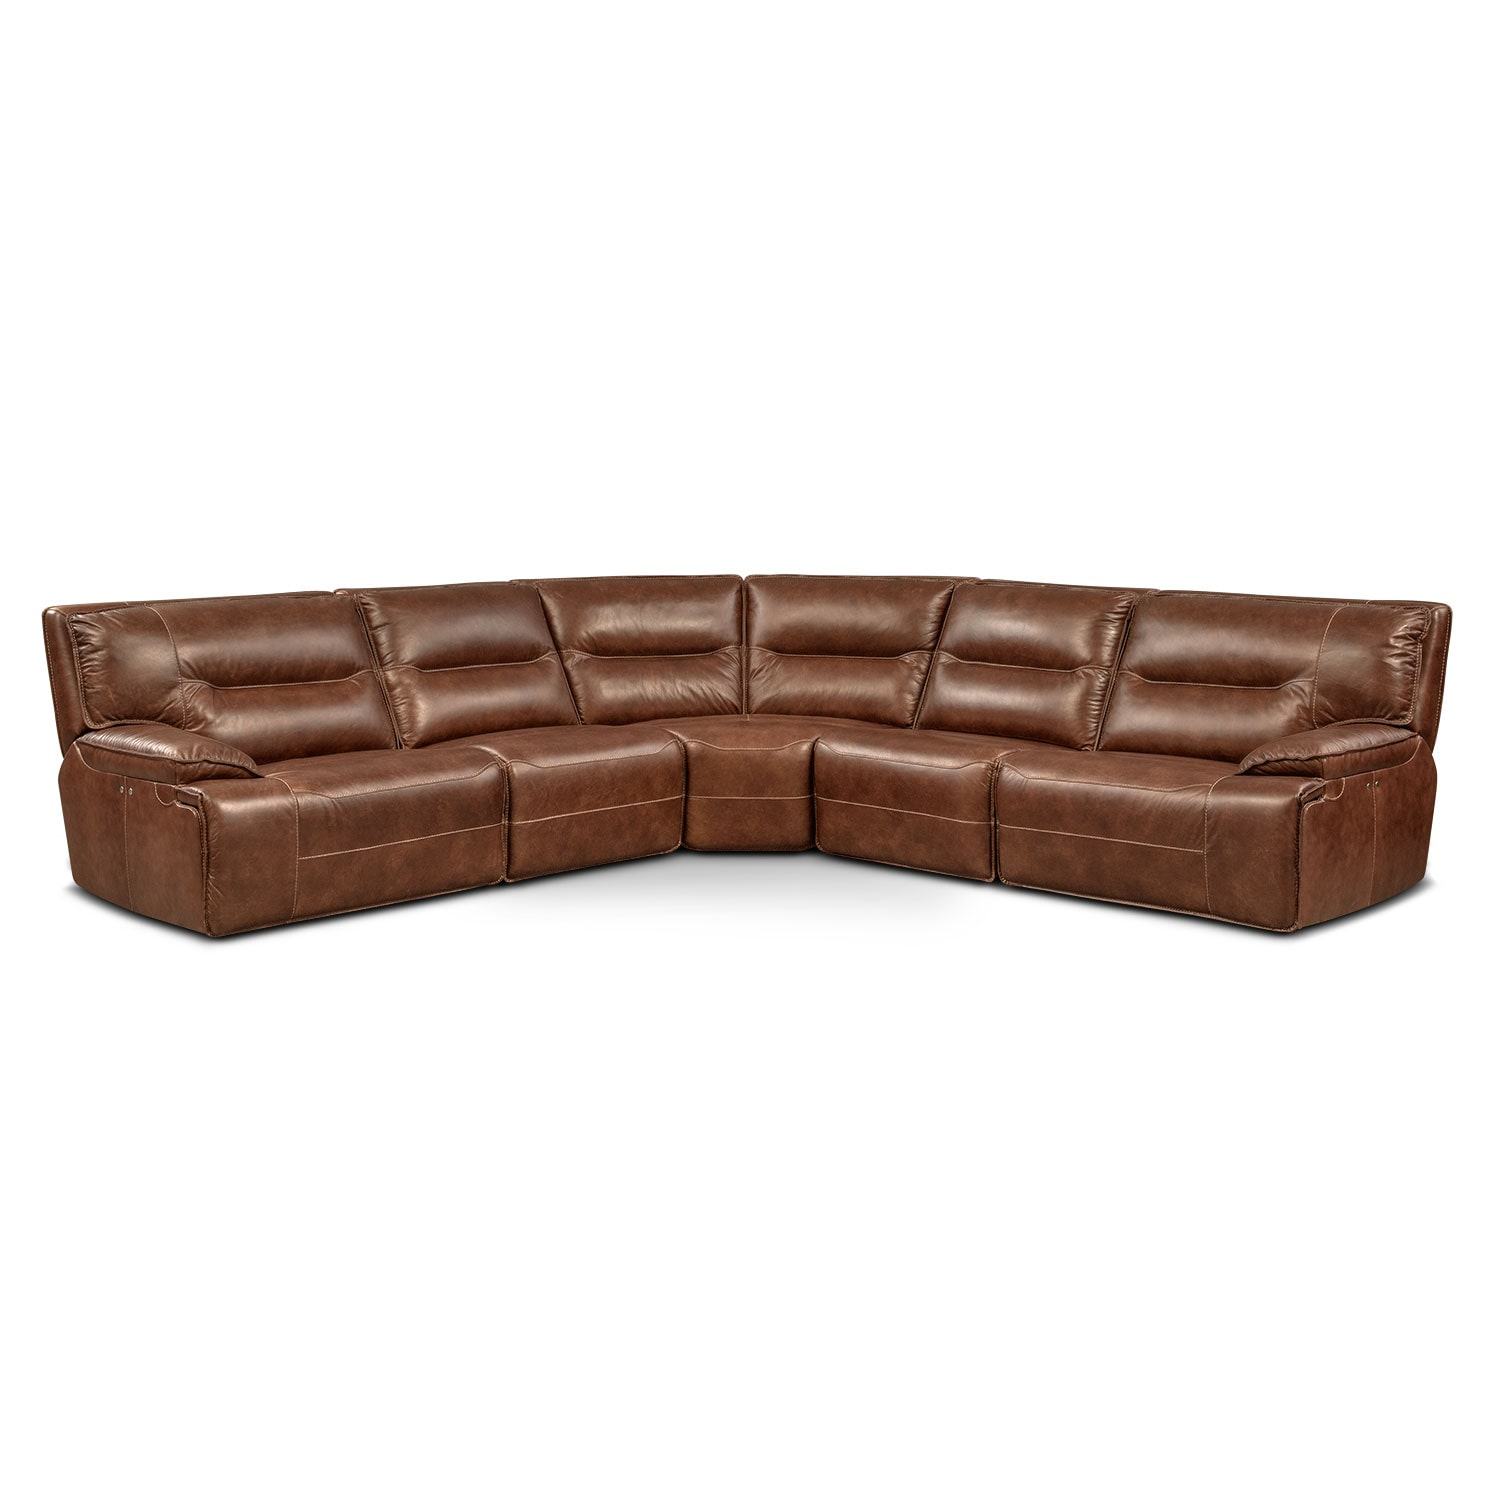 Living Room Furniture - Glenmont Brown 5 Pc. Power Reclining Sectional w/ 2 Power Recliners